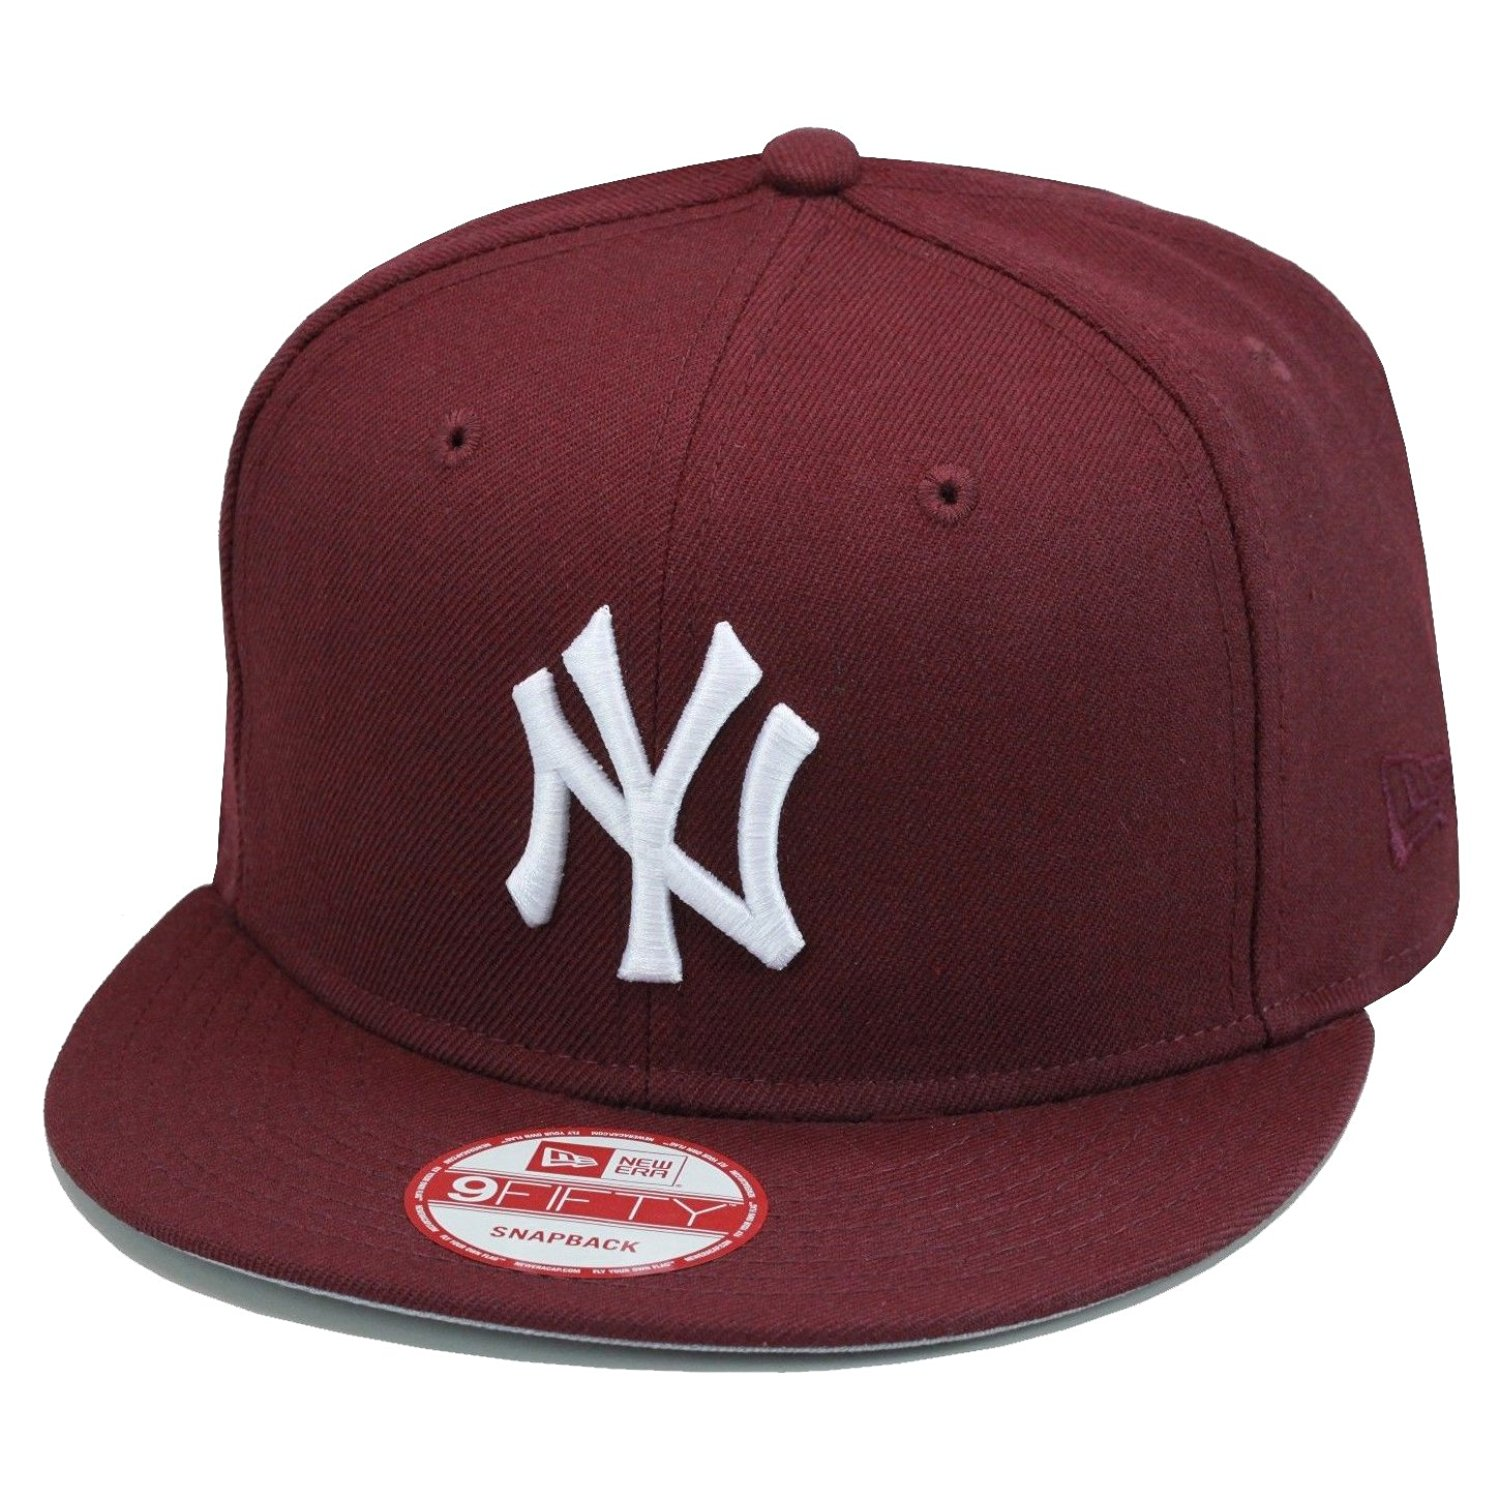 bc550a80d82 Get Quotations · New Era 9fifty New York Yankees Snapback Hat Cap All  Maroon White MLB Baseball